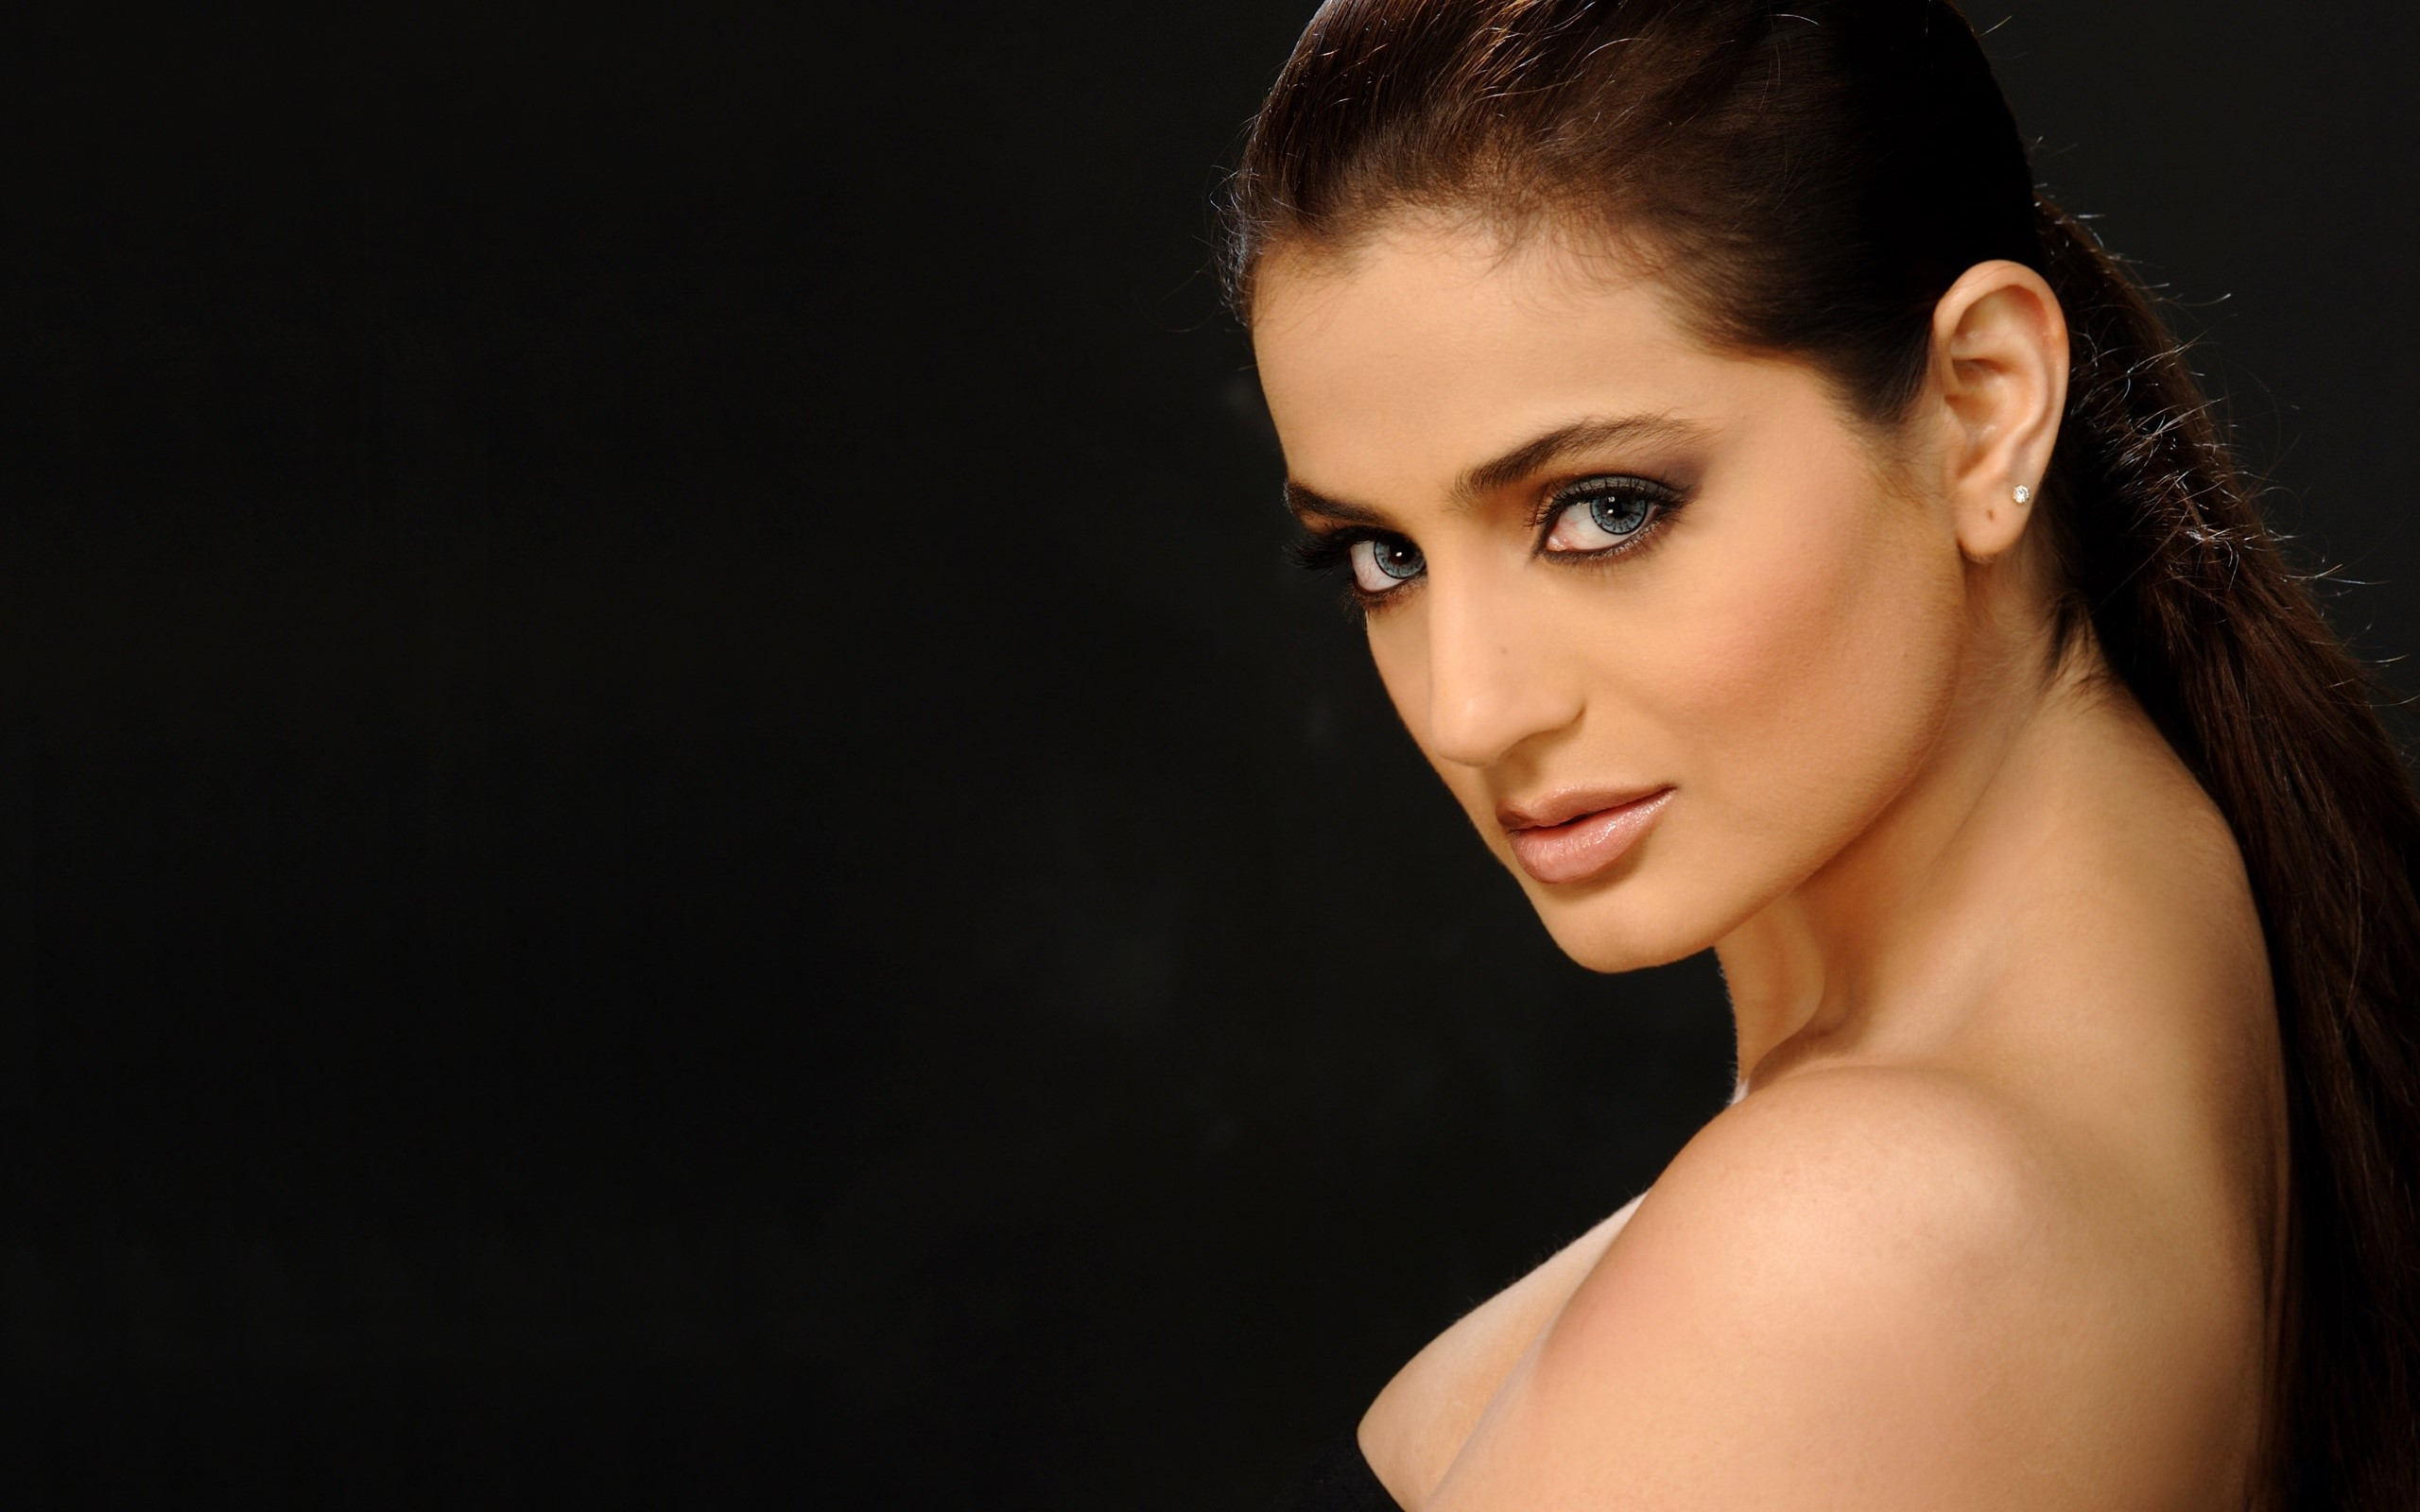 Ameesha Patel Hot Sexy Photos ameesha patel wallpapers high resolution and quality download